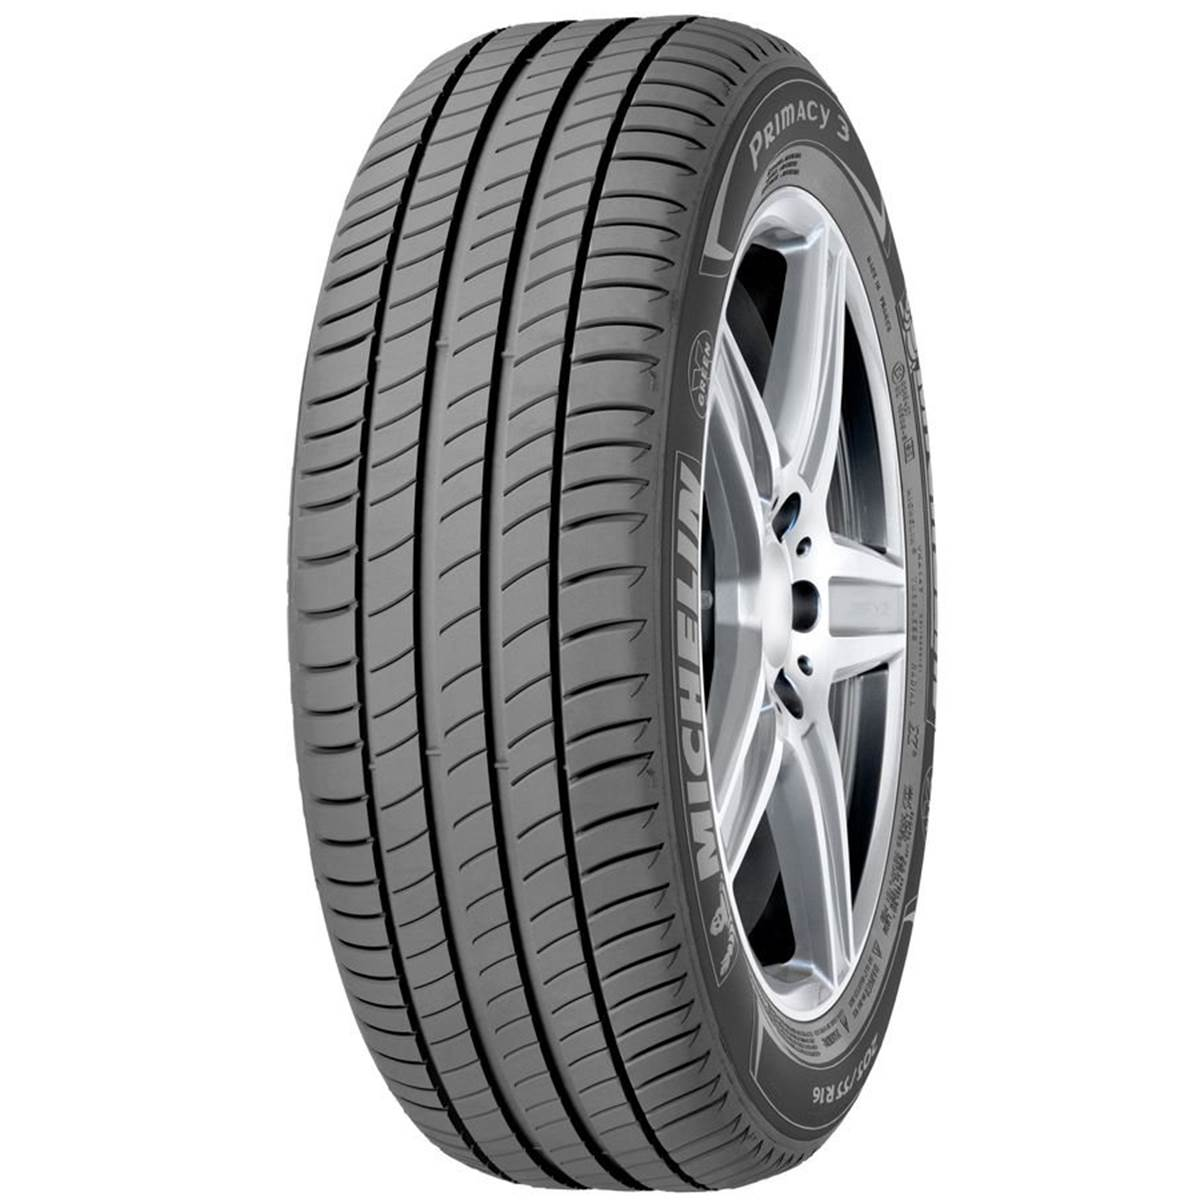 Pneu Michelin 225/50R17 94Y Primacy 3